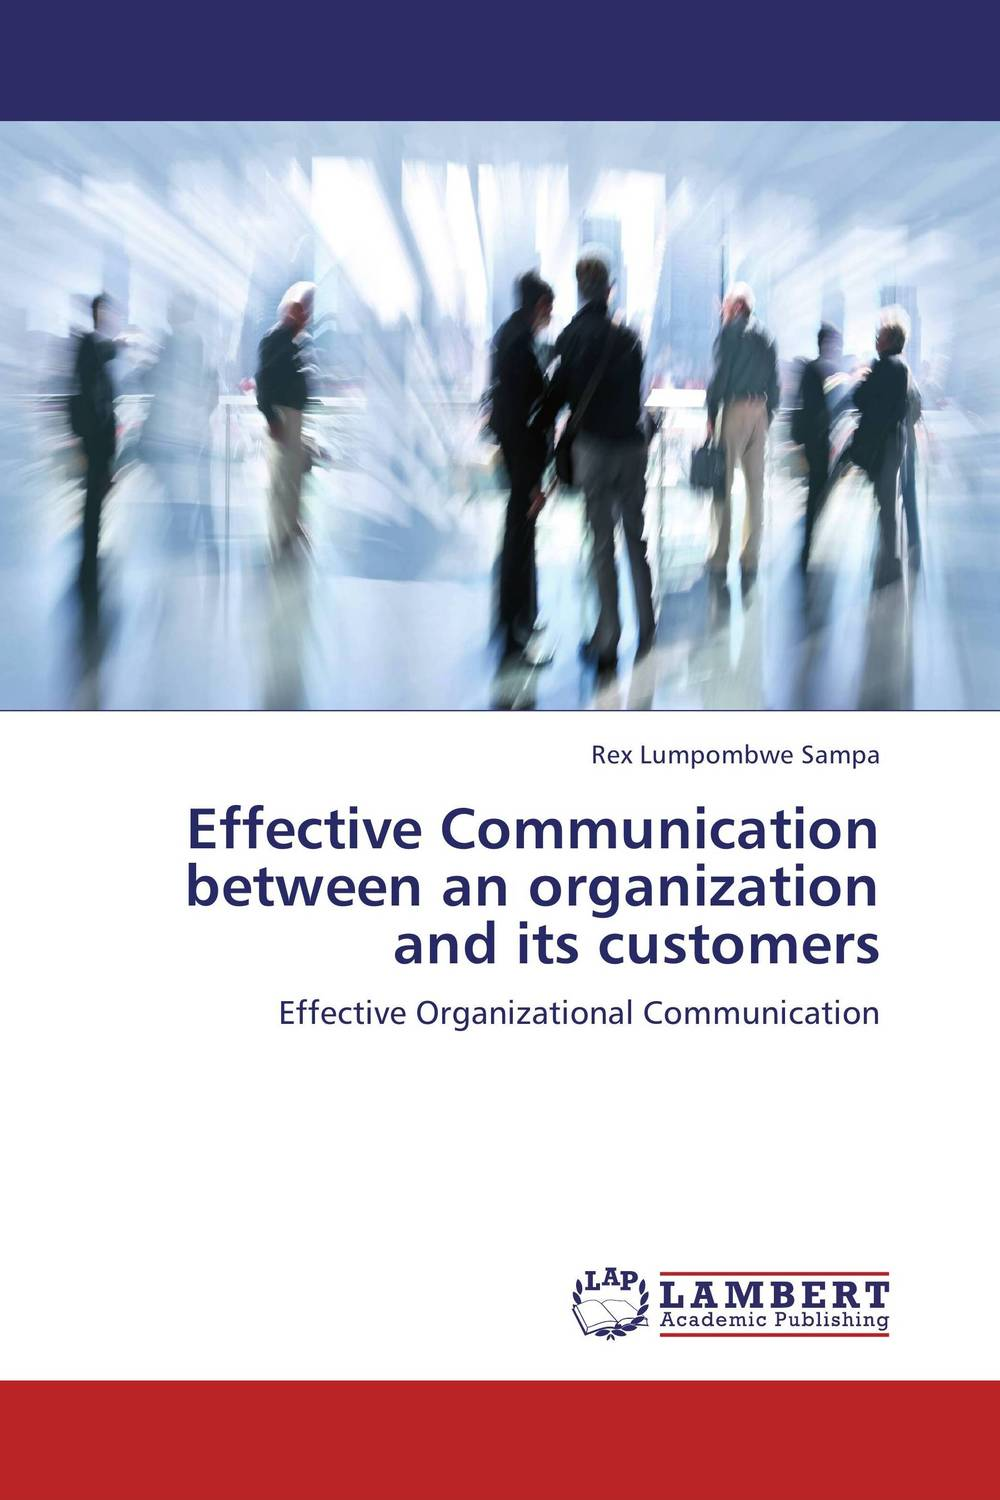 Effective Communication between an organization and its customers mohamad zakaria the role and function of effective communication